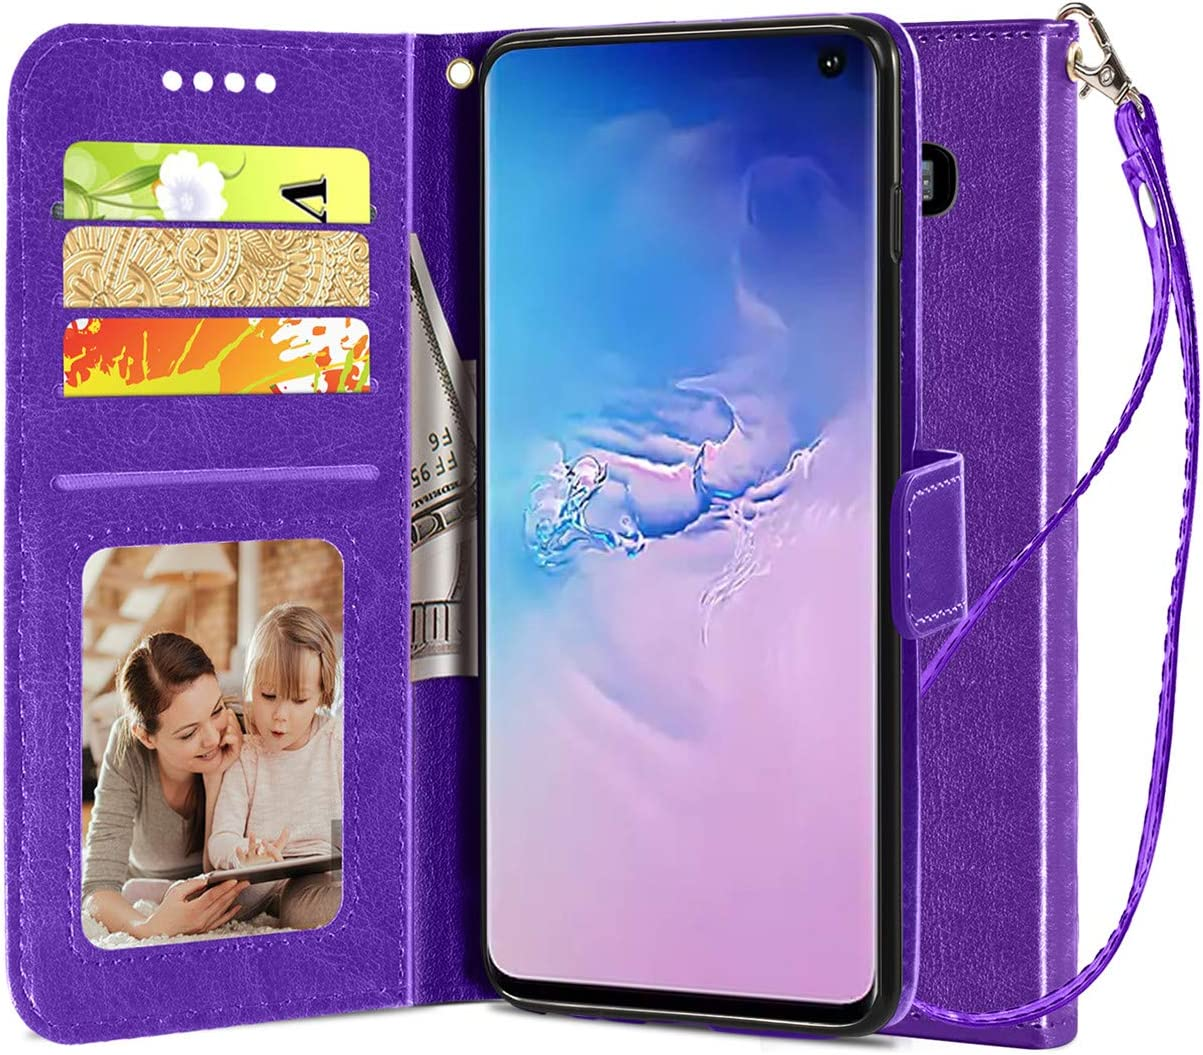 Samsung Galaxy S10 Wallet Case, [Wrist Strap] Luxury PU Leather Wallet Flip Full Body Protective Case Cover with [Card Slots] and Kickstand for Samsung Galaxy S10-Purple